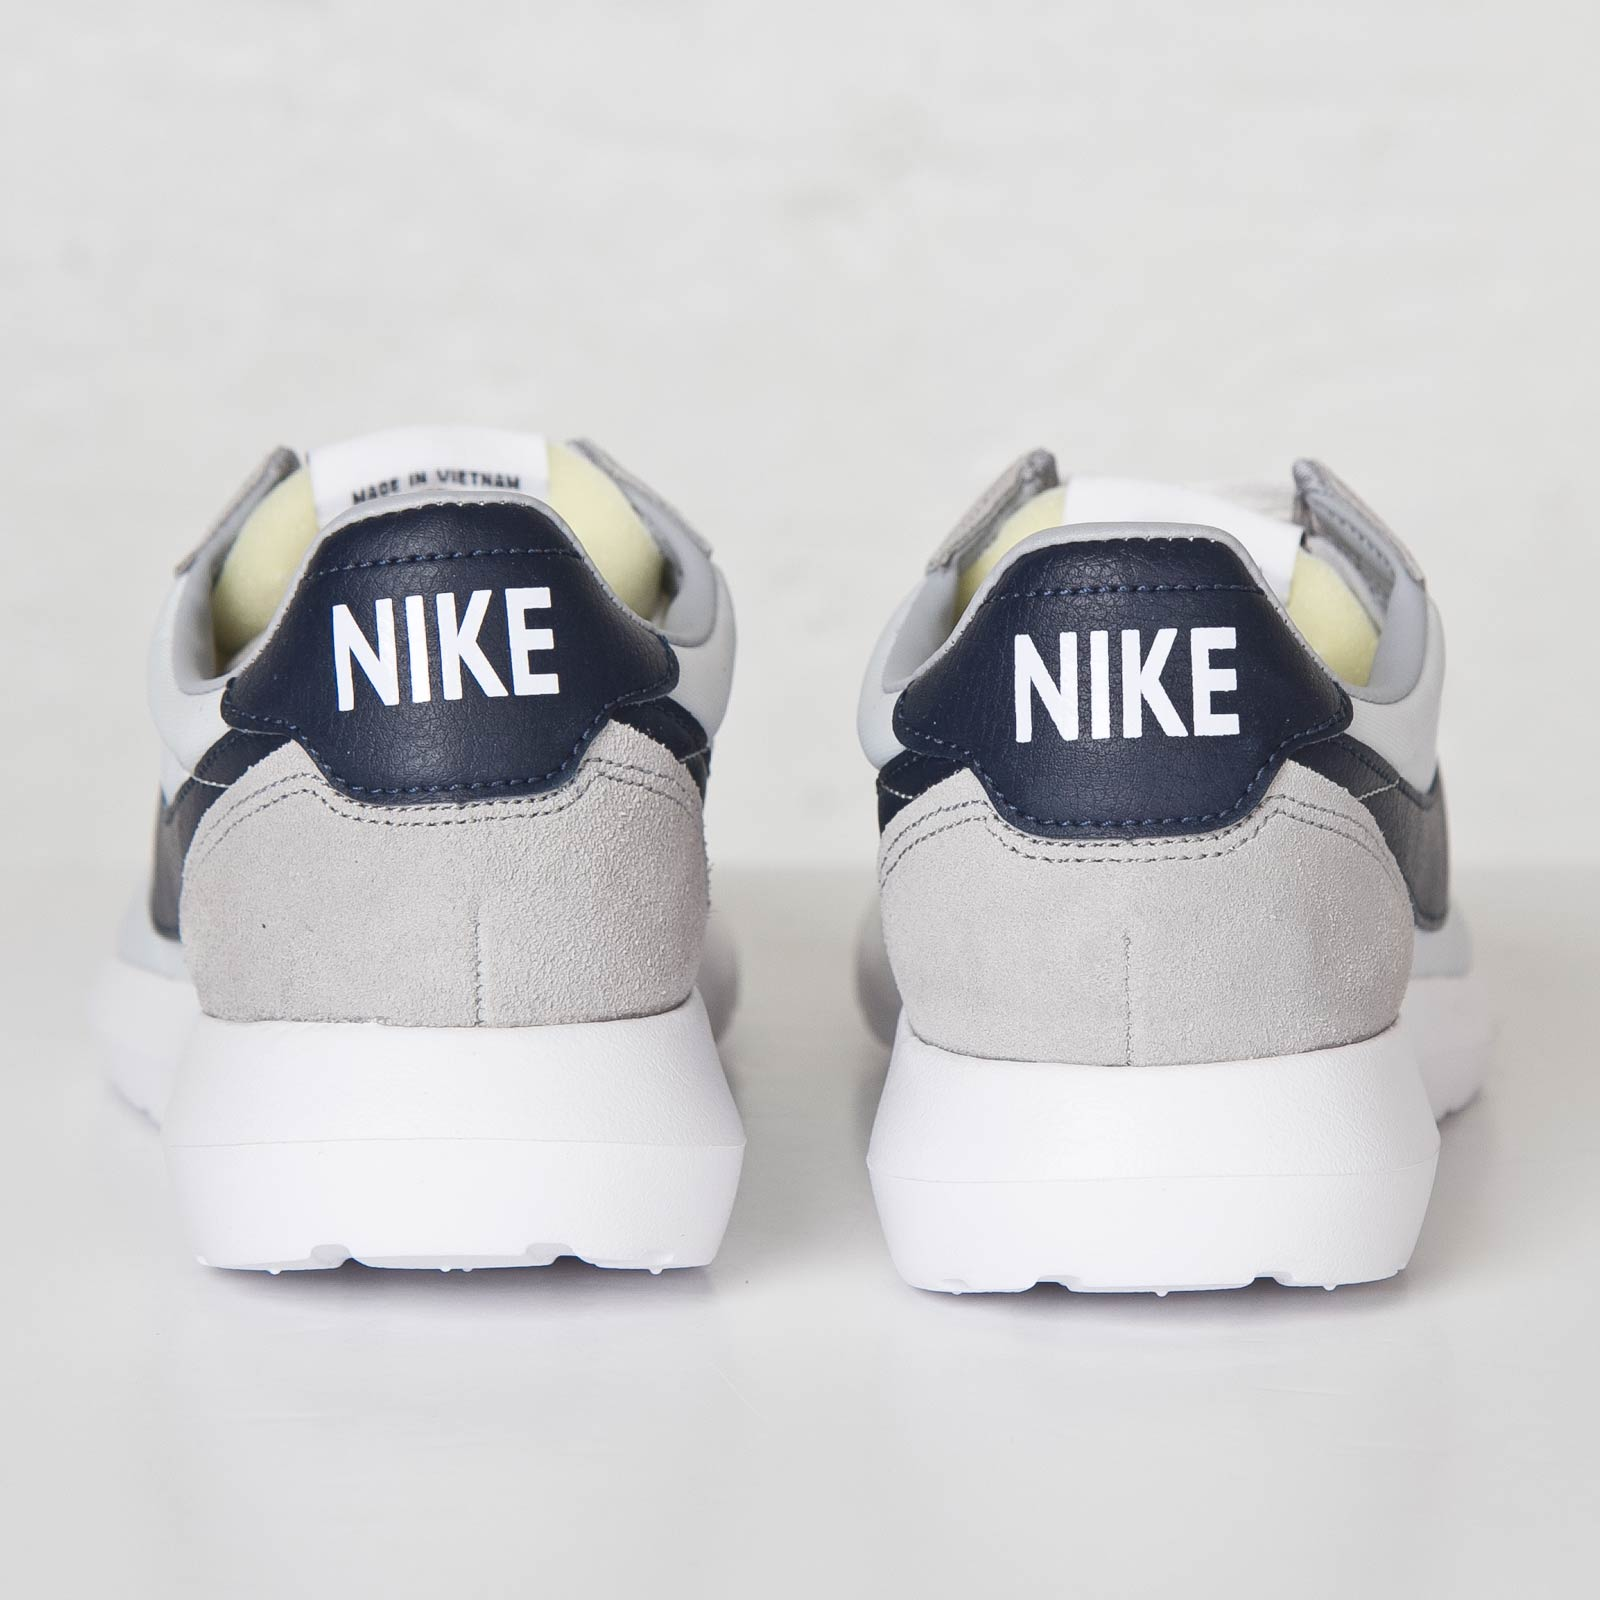 cheap for discount 168e7 ce53a Nike Roshe LD-1000 QS - 802022-002 - Sneakersnstuff   sneakers   streetwear  online since 1999